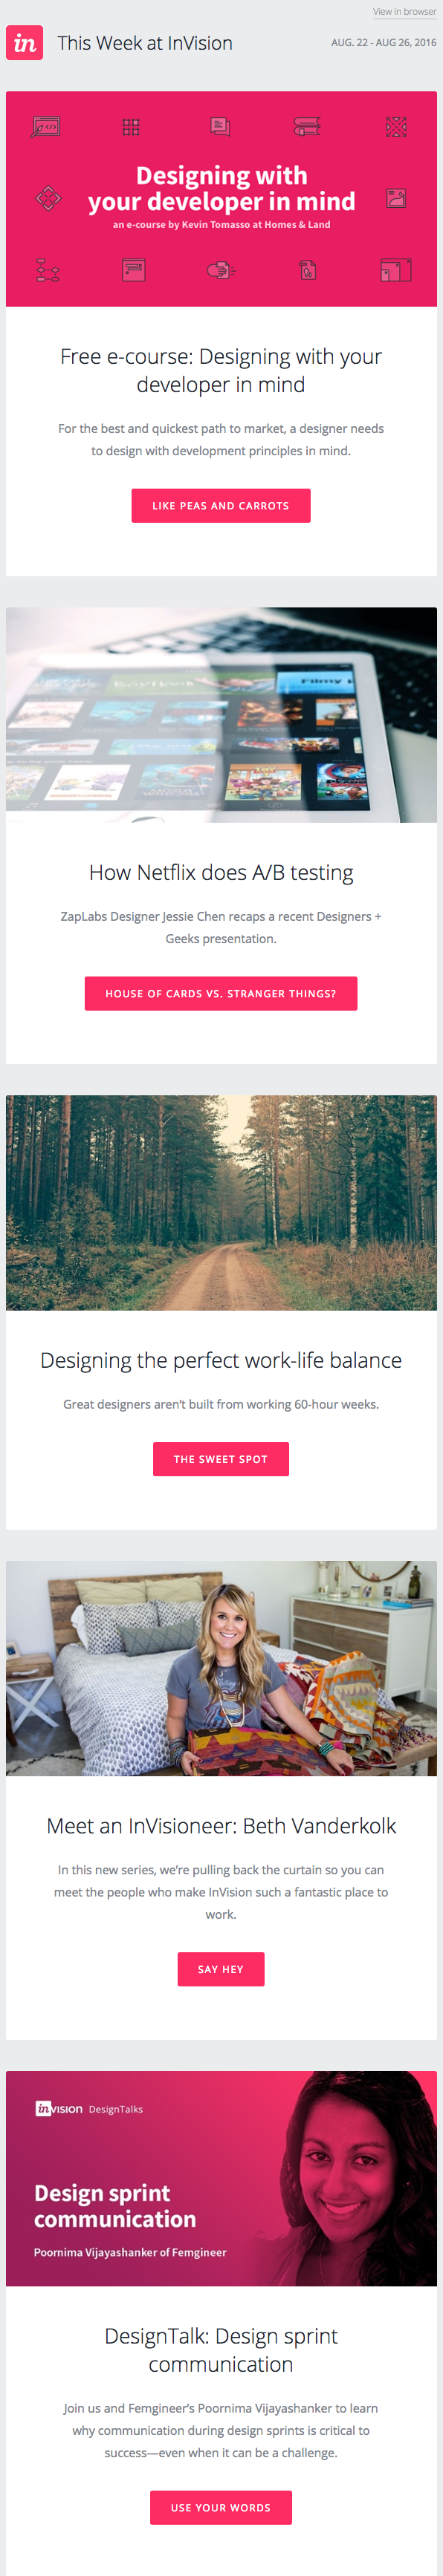 Example of InVision's email marketing campaign for the weekly blog newsletter